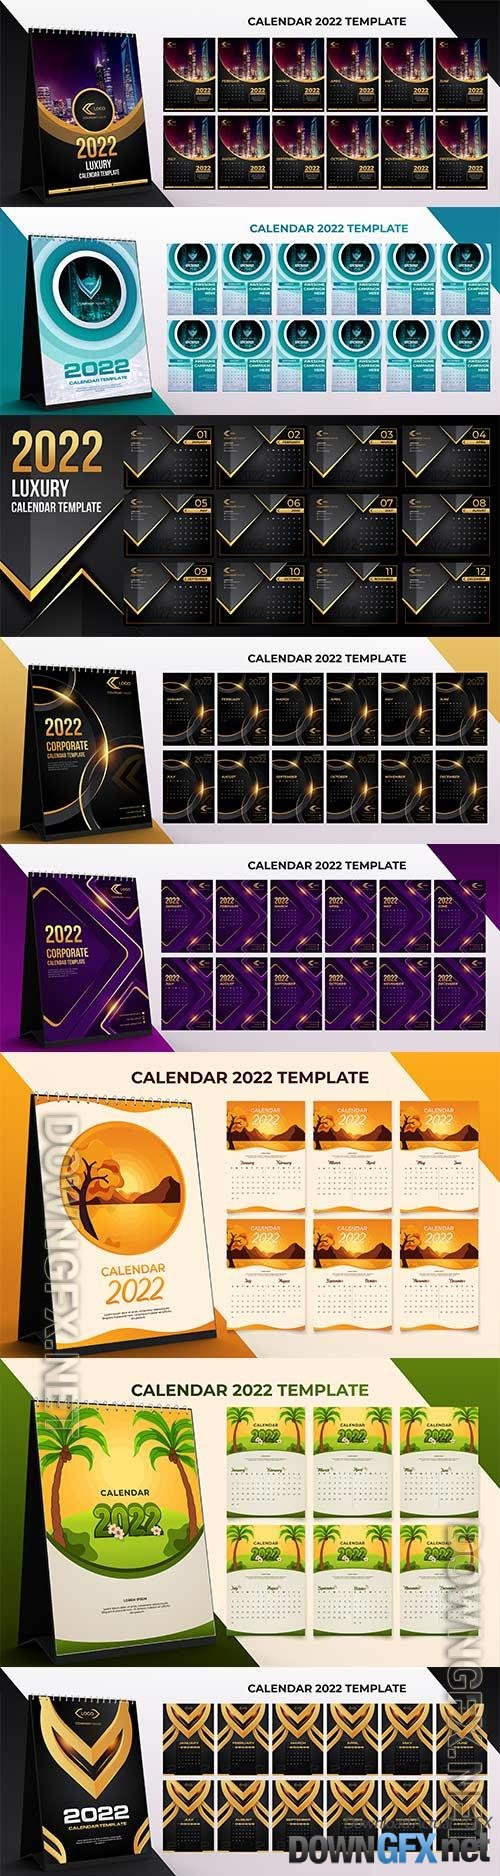 2022 desk calendar corporate template set of 12 months with black gold color background premium vector